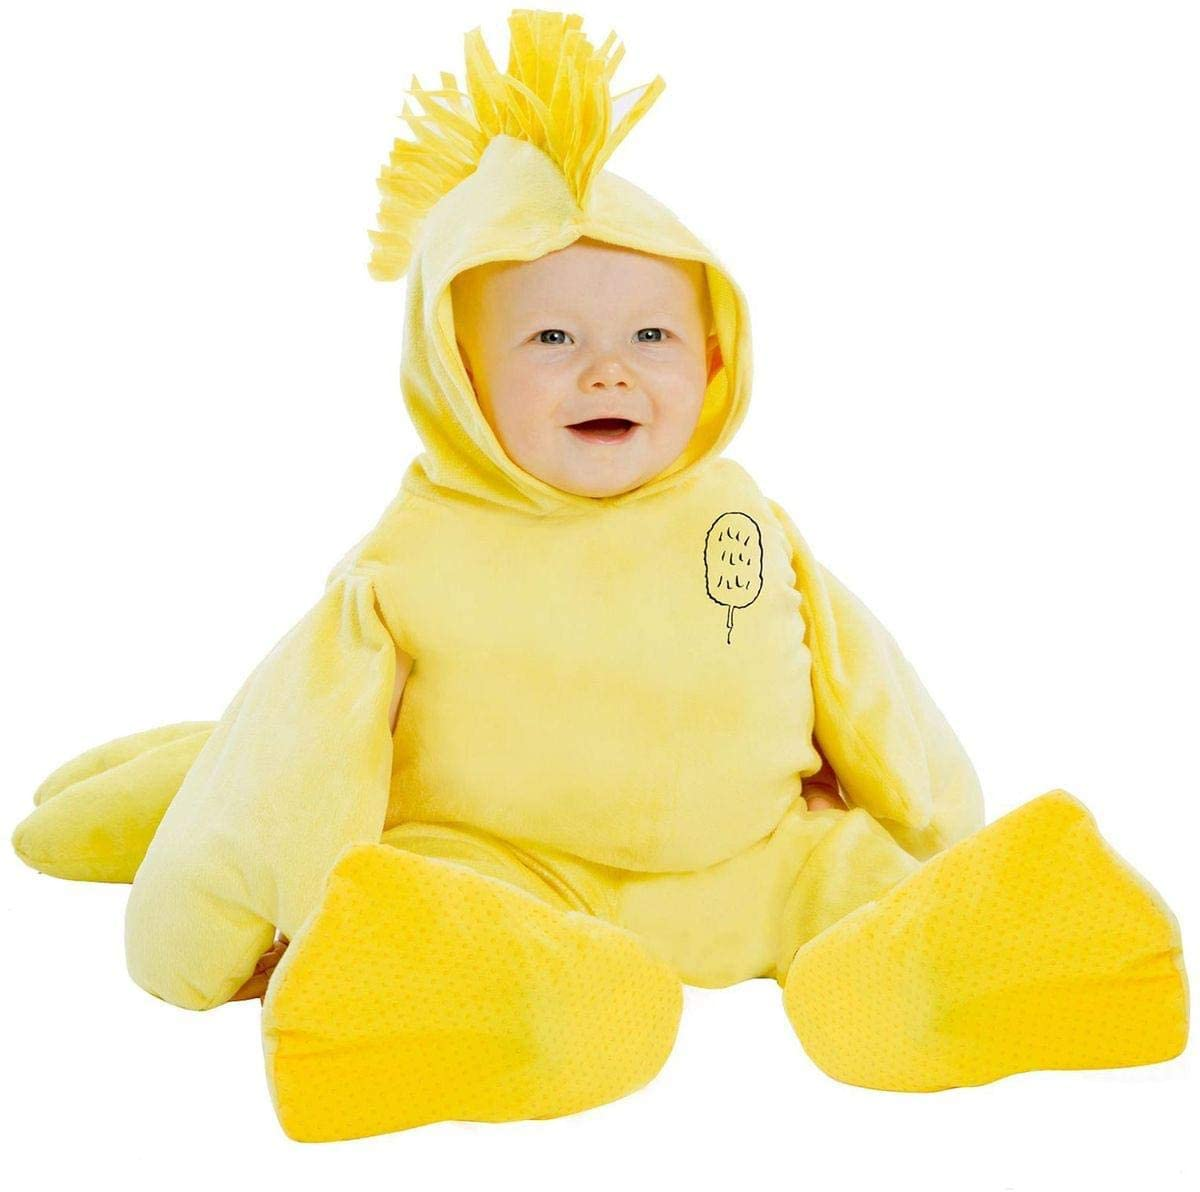 Peanuts Woodstock Super Deluxe Toddler Costume 1T/2T